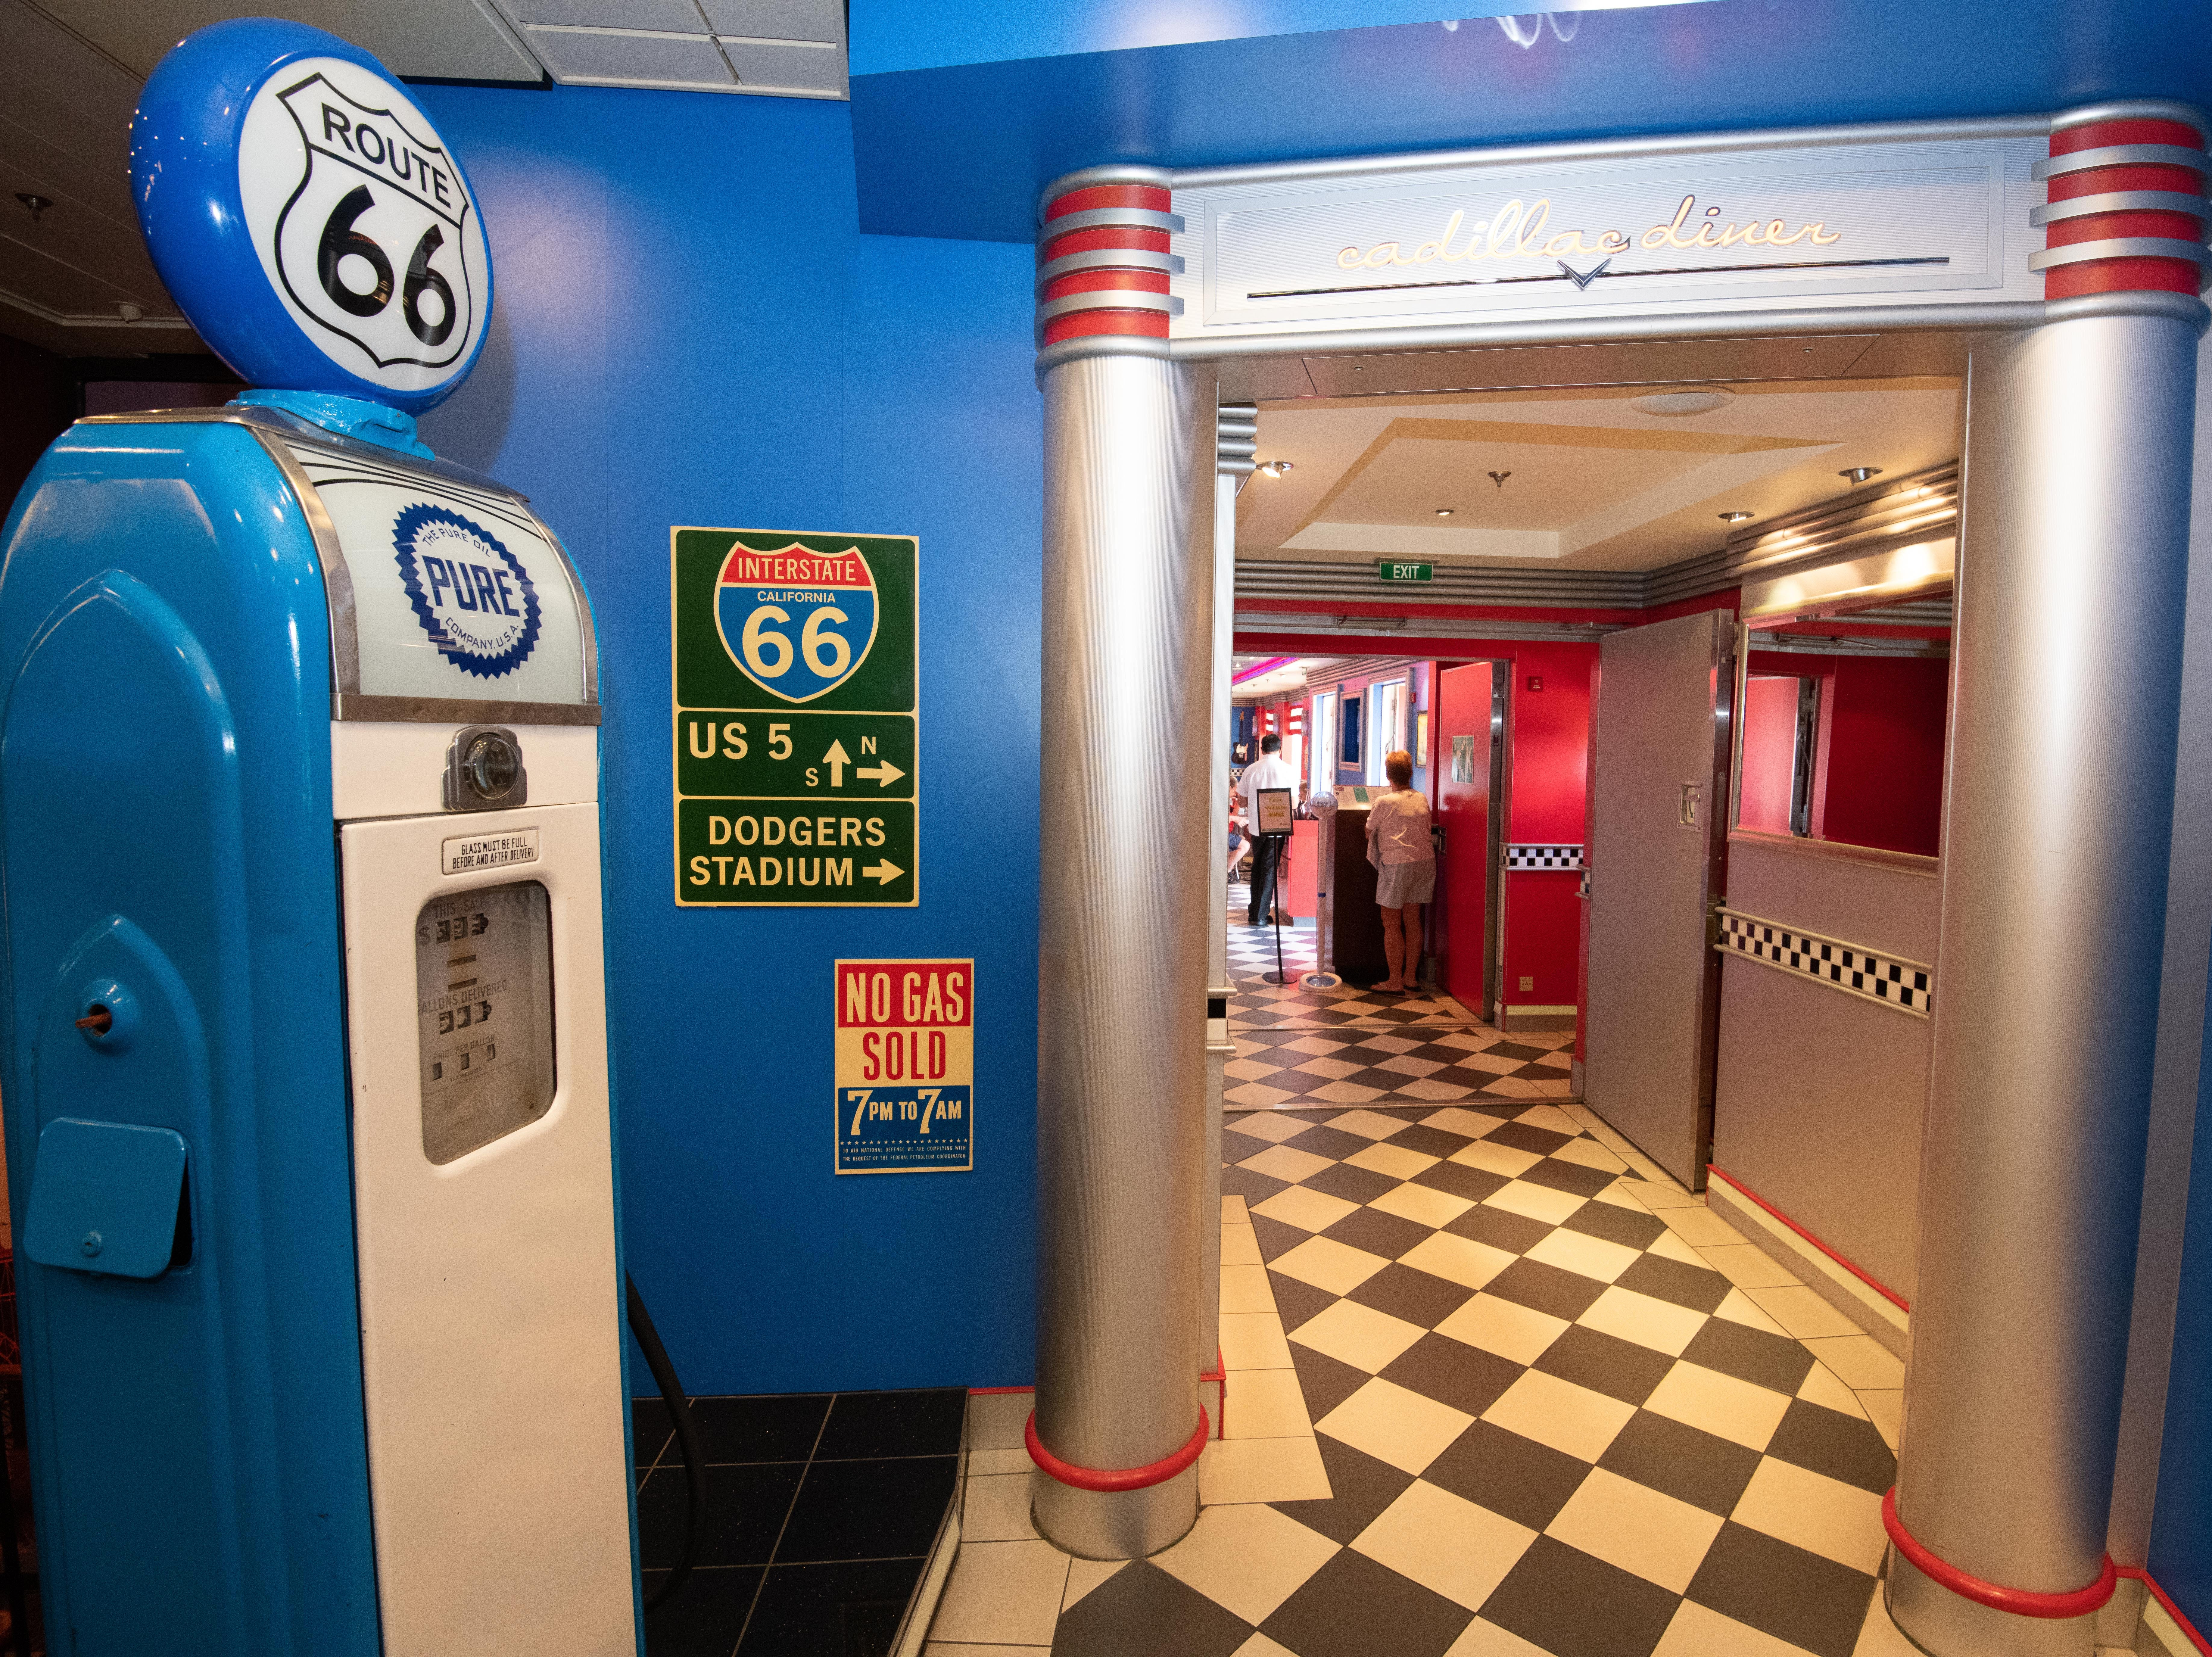 Located on Deck 6, the 1950s-themed Cadillac Diner has Cadillac seats, plays '50s Rock 'n Roll and offers up a classic menu of burgers, fish 'n chips, potpies and wok-fast dishes. It's one of the six eateries on Pride of America where dining is included in the fare.